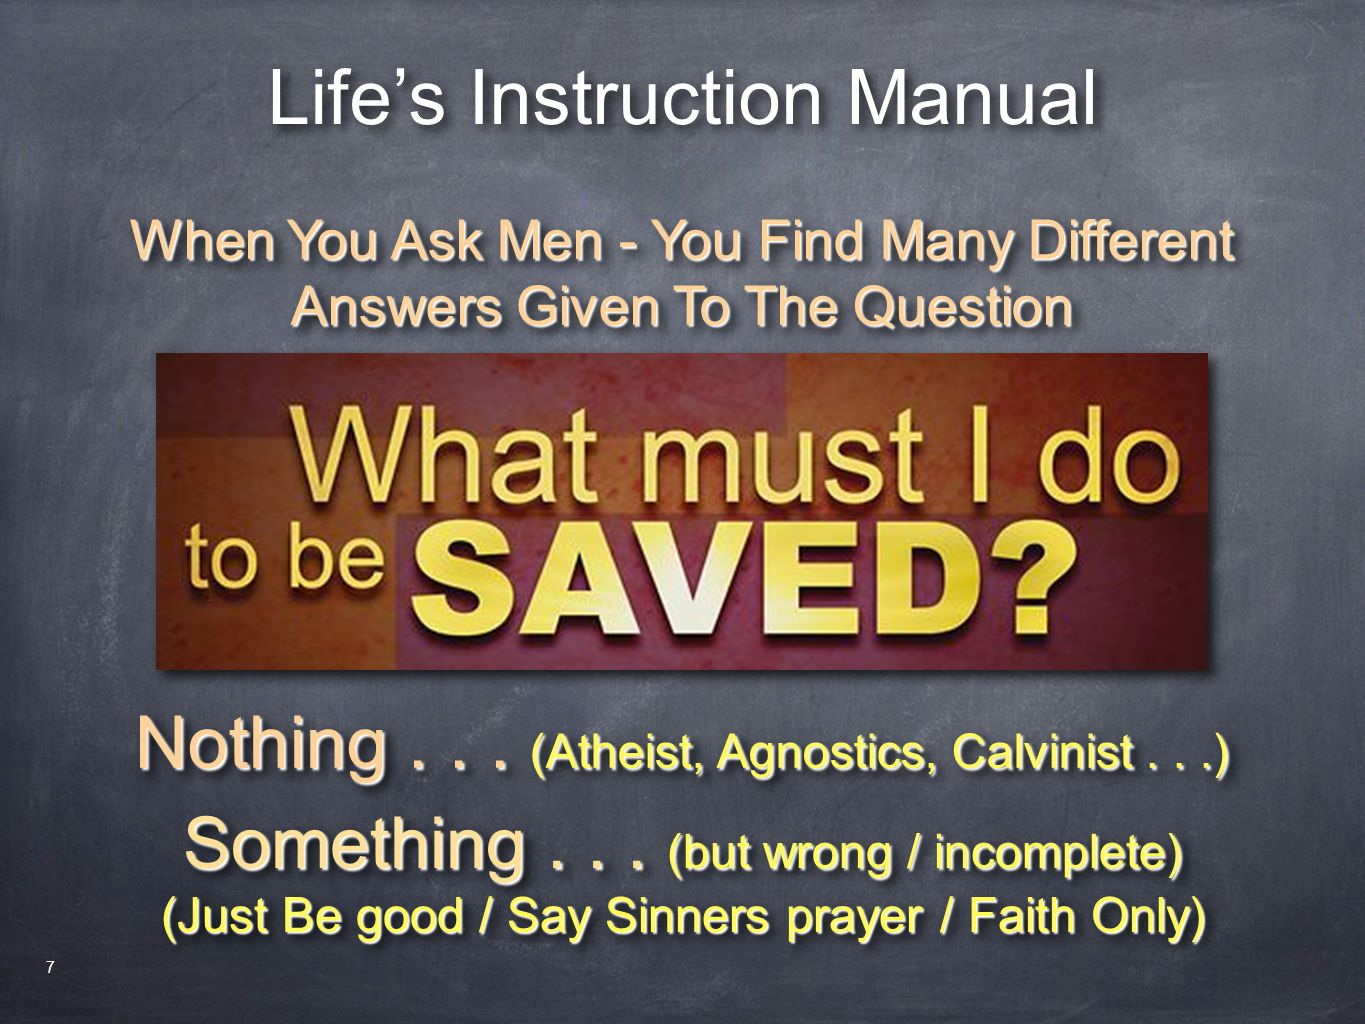 Life's Instruction Manual When You Ask Men - You Find Many Different Answers Given To The Question Nothing... (Atheist, Agnostics, Calvinist...) Somet